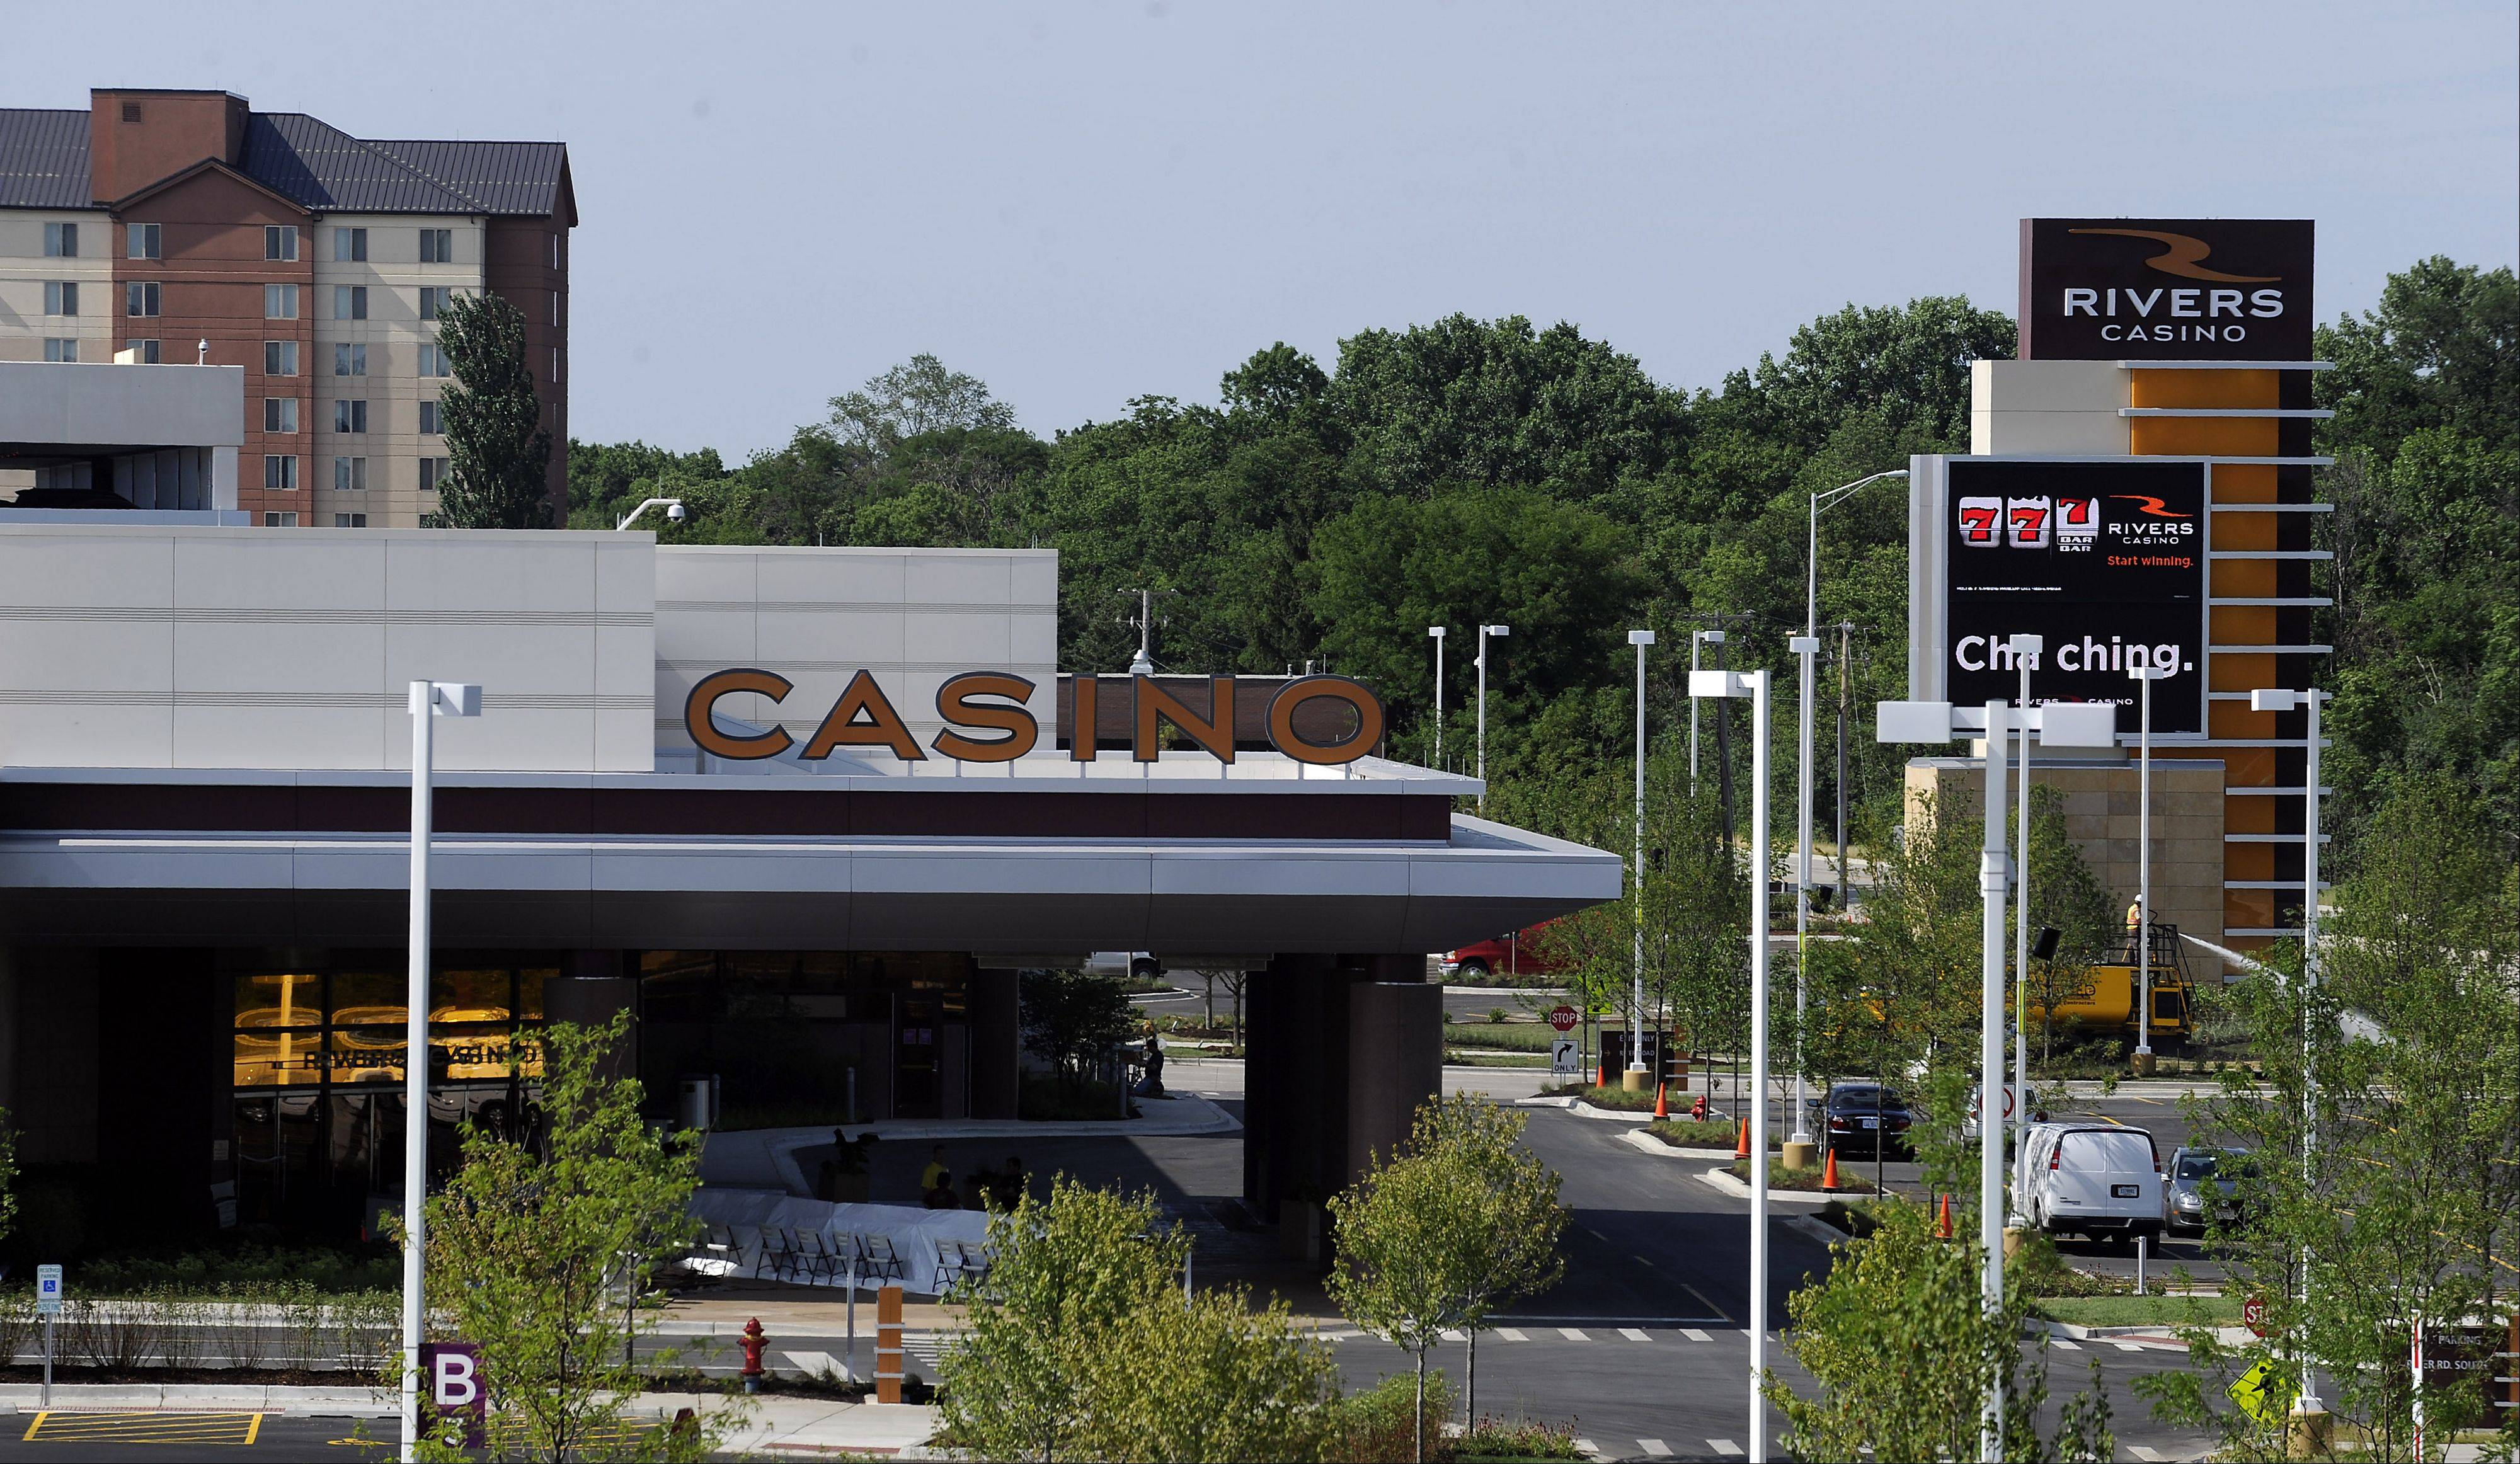 Rivers Casino in Des Plaines, which opened July 18, 2011, is the state's highest grossing casino. Candidates for Des Plaines' open mayor's seat say the city should take steps to protect Rivers revenues.